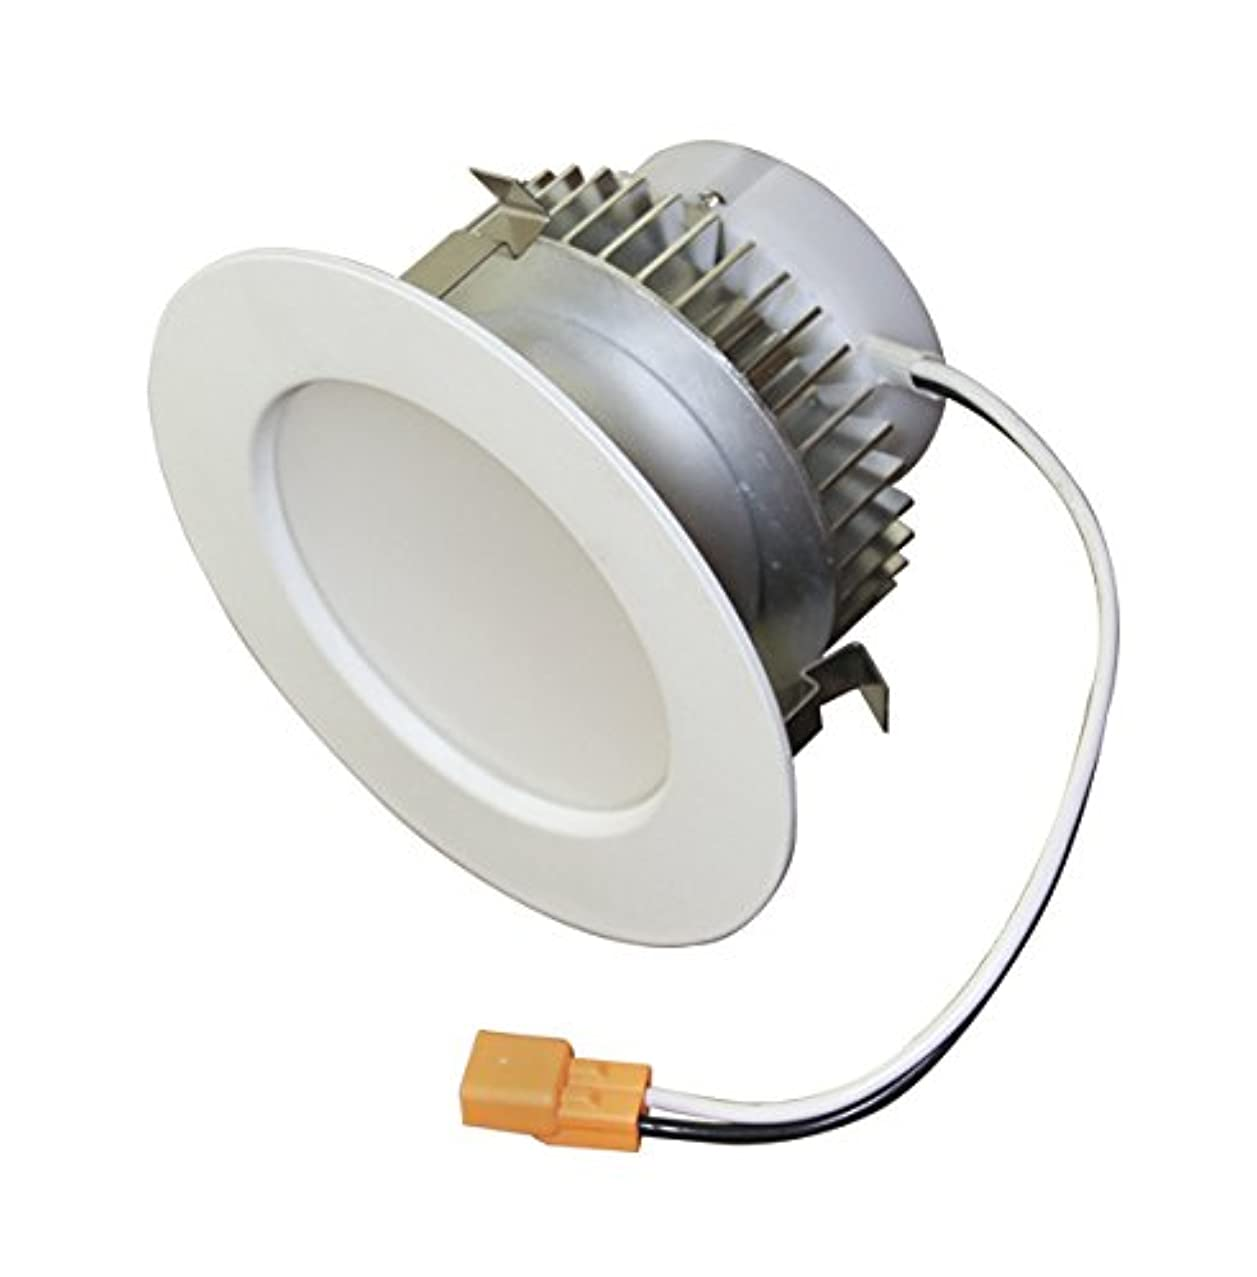 American Lighting EP4-E26-40-WH Samsung LED E-Pro Series Recessed Downlight, Dimmable, 7.6-Watts, 550 Lumens, 4000K Bright White, 4-Inch, White